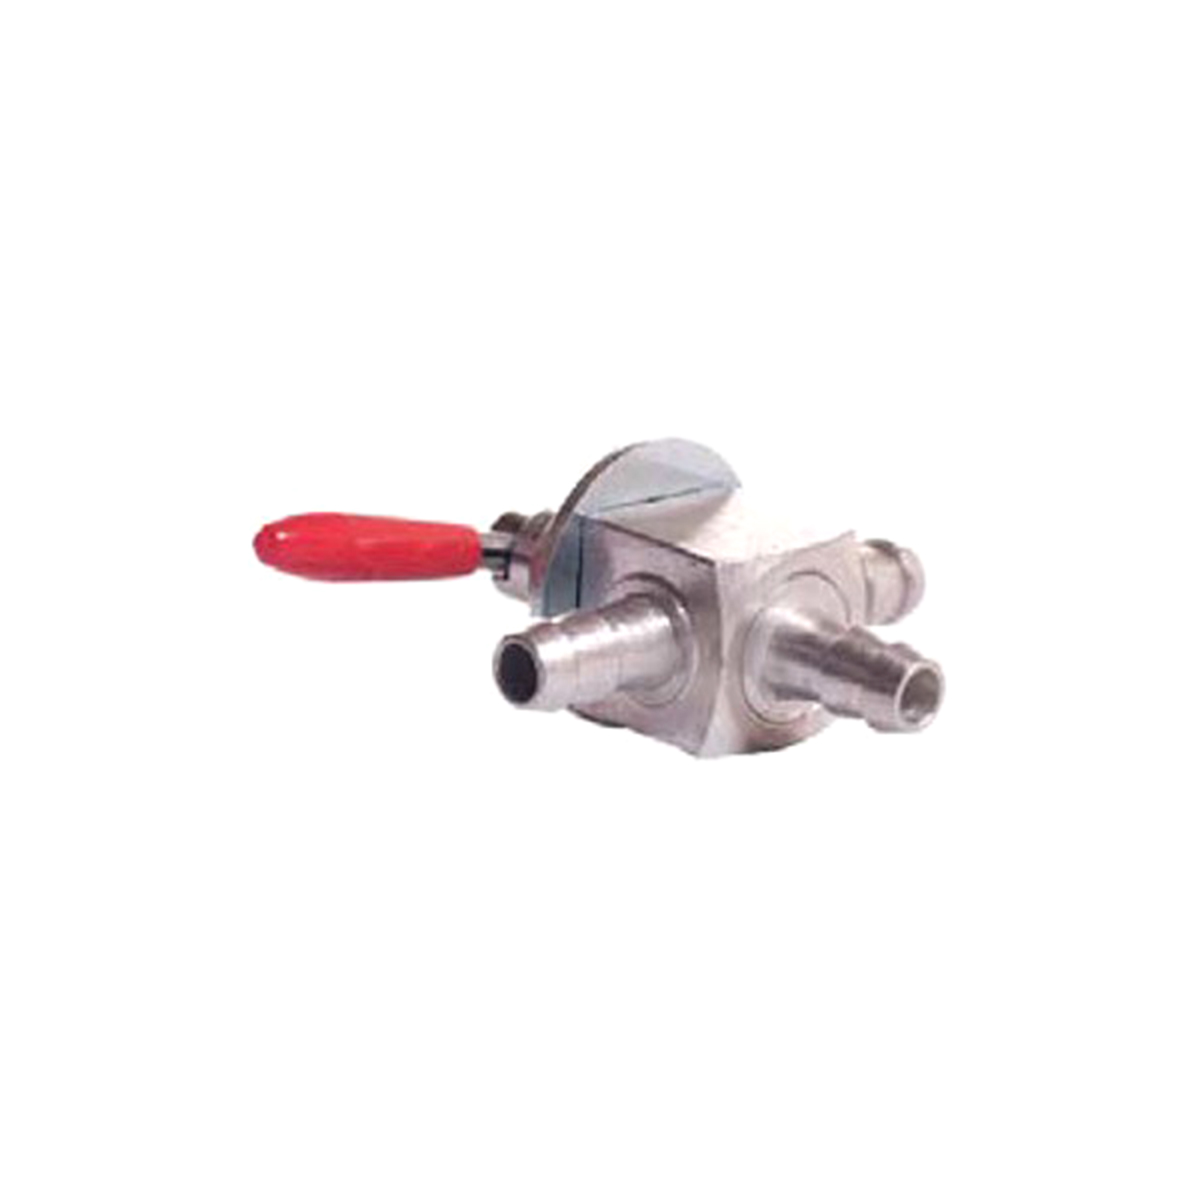 400358 Dixie Chopper Fuel Valve